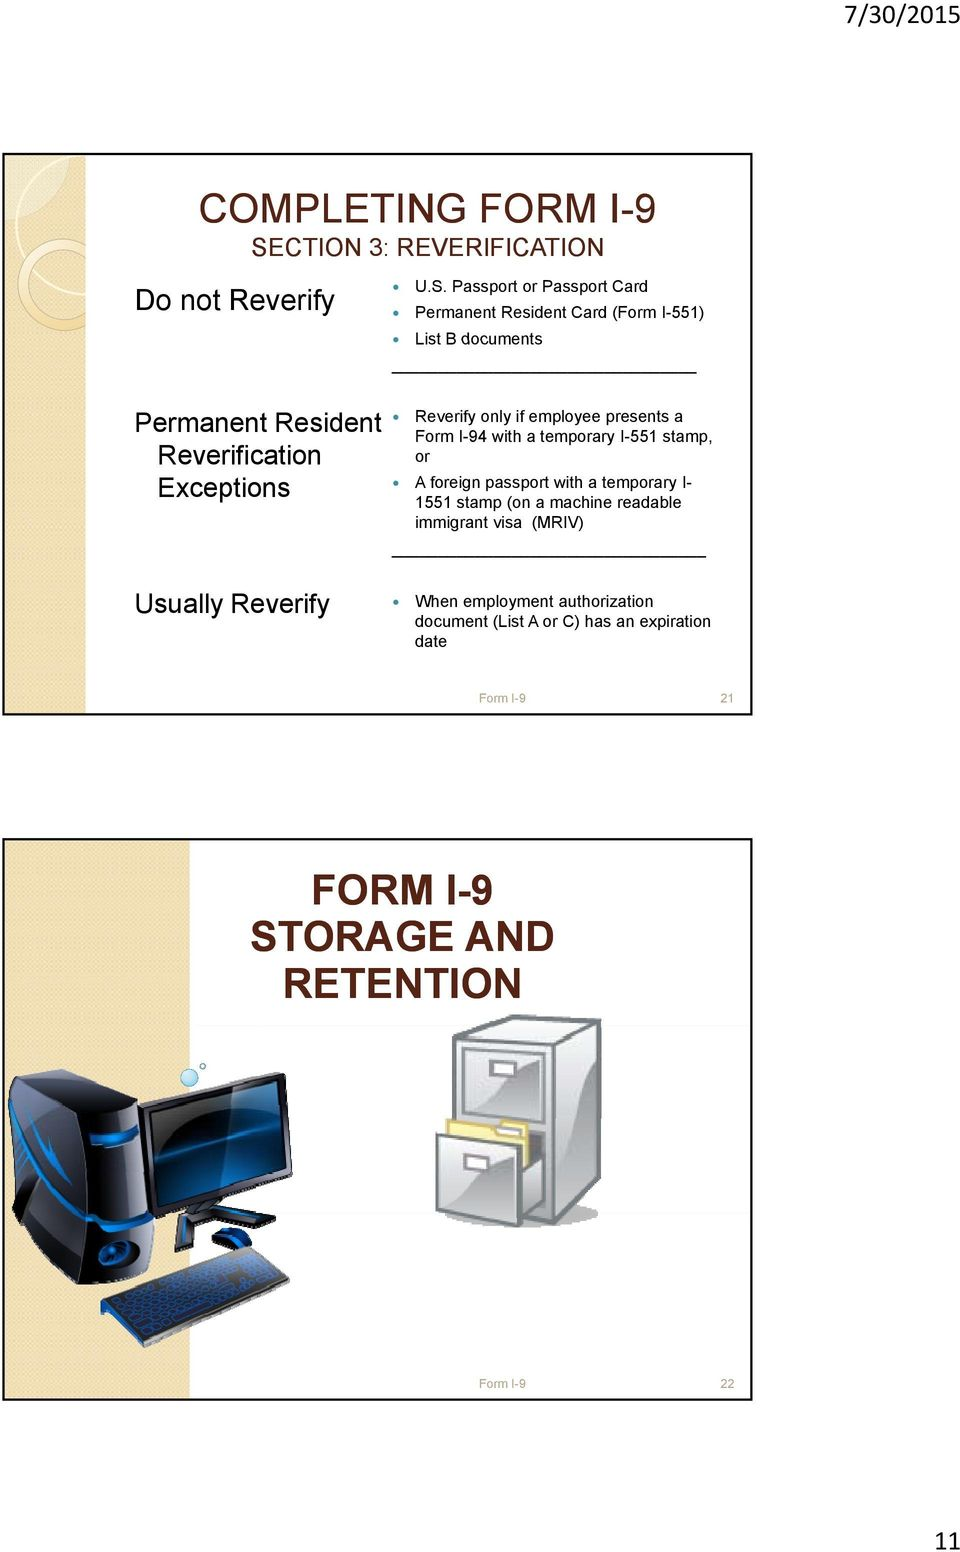 Passport or Passport Card Permanent Resident Card (Form I-551) List B documents Permanent Resident Reverification Exceptions